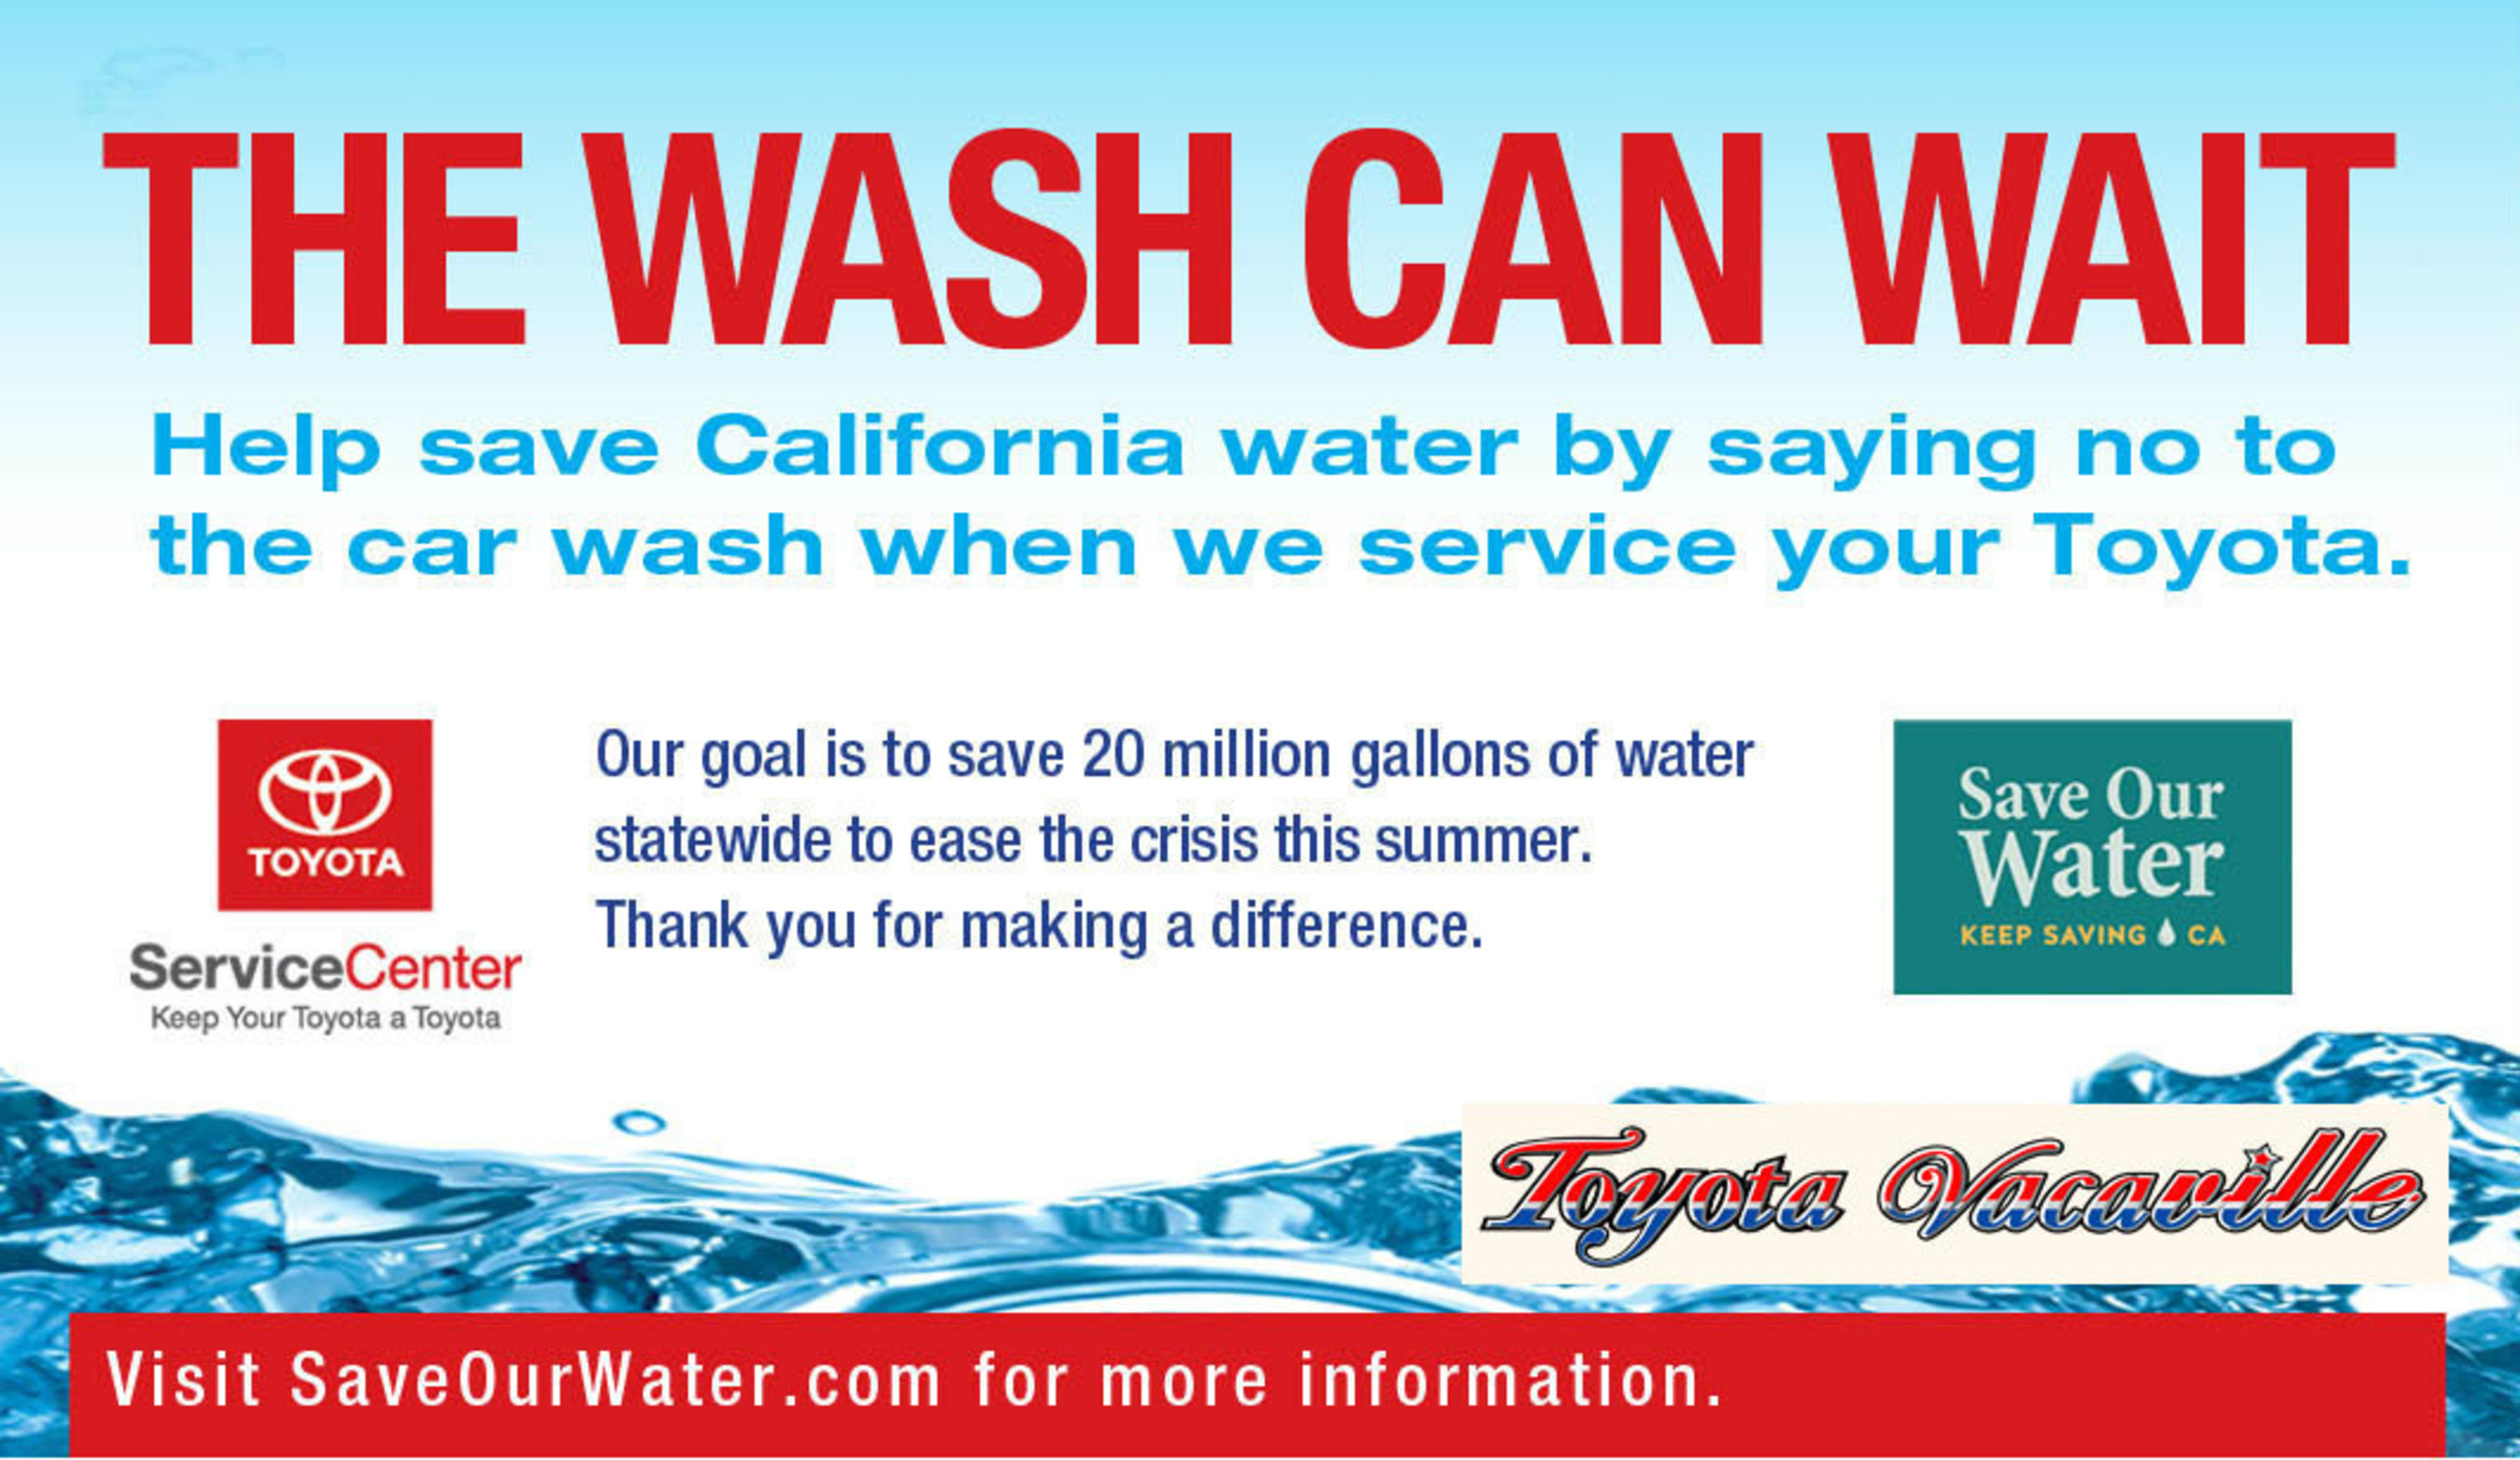 Toyota Vacaville reduces water use to help alleviate California water crisis